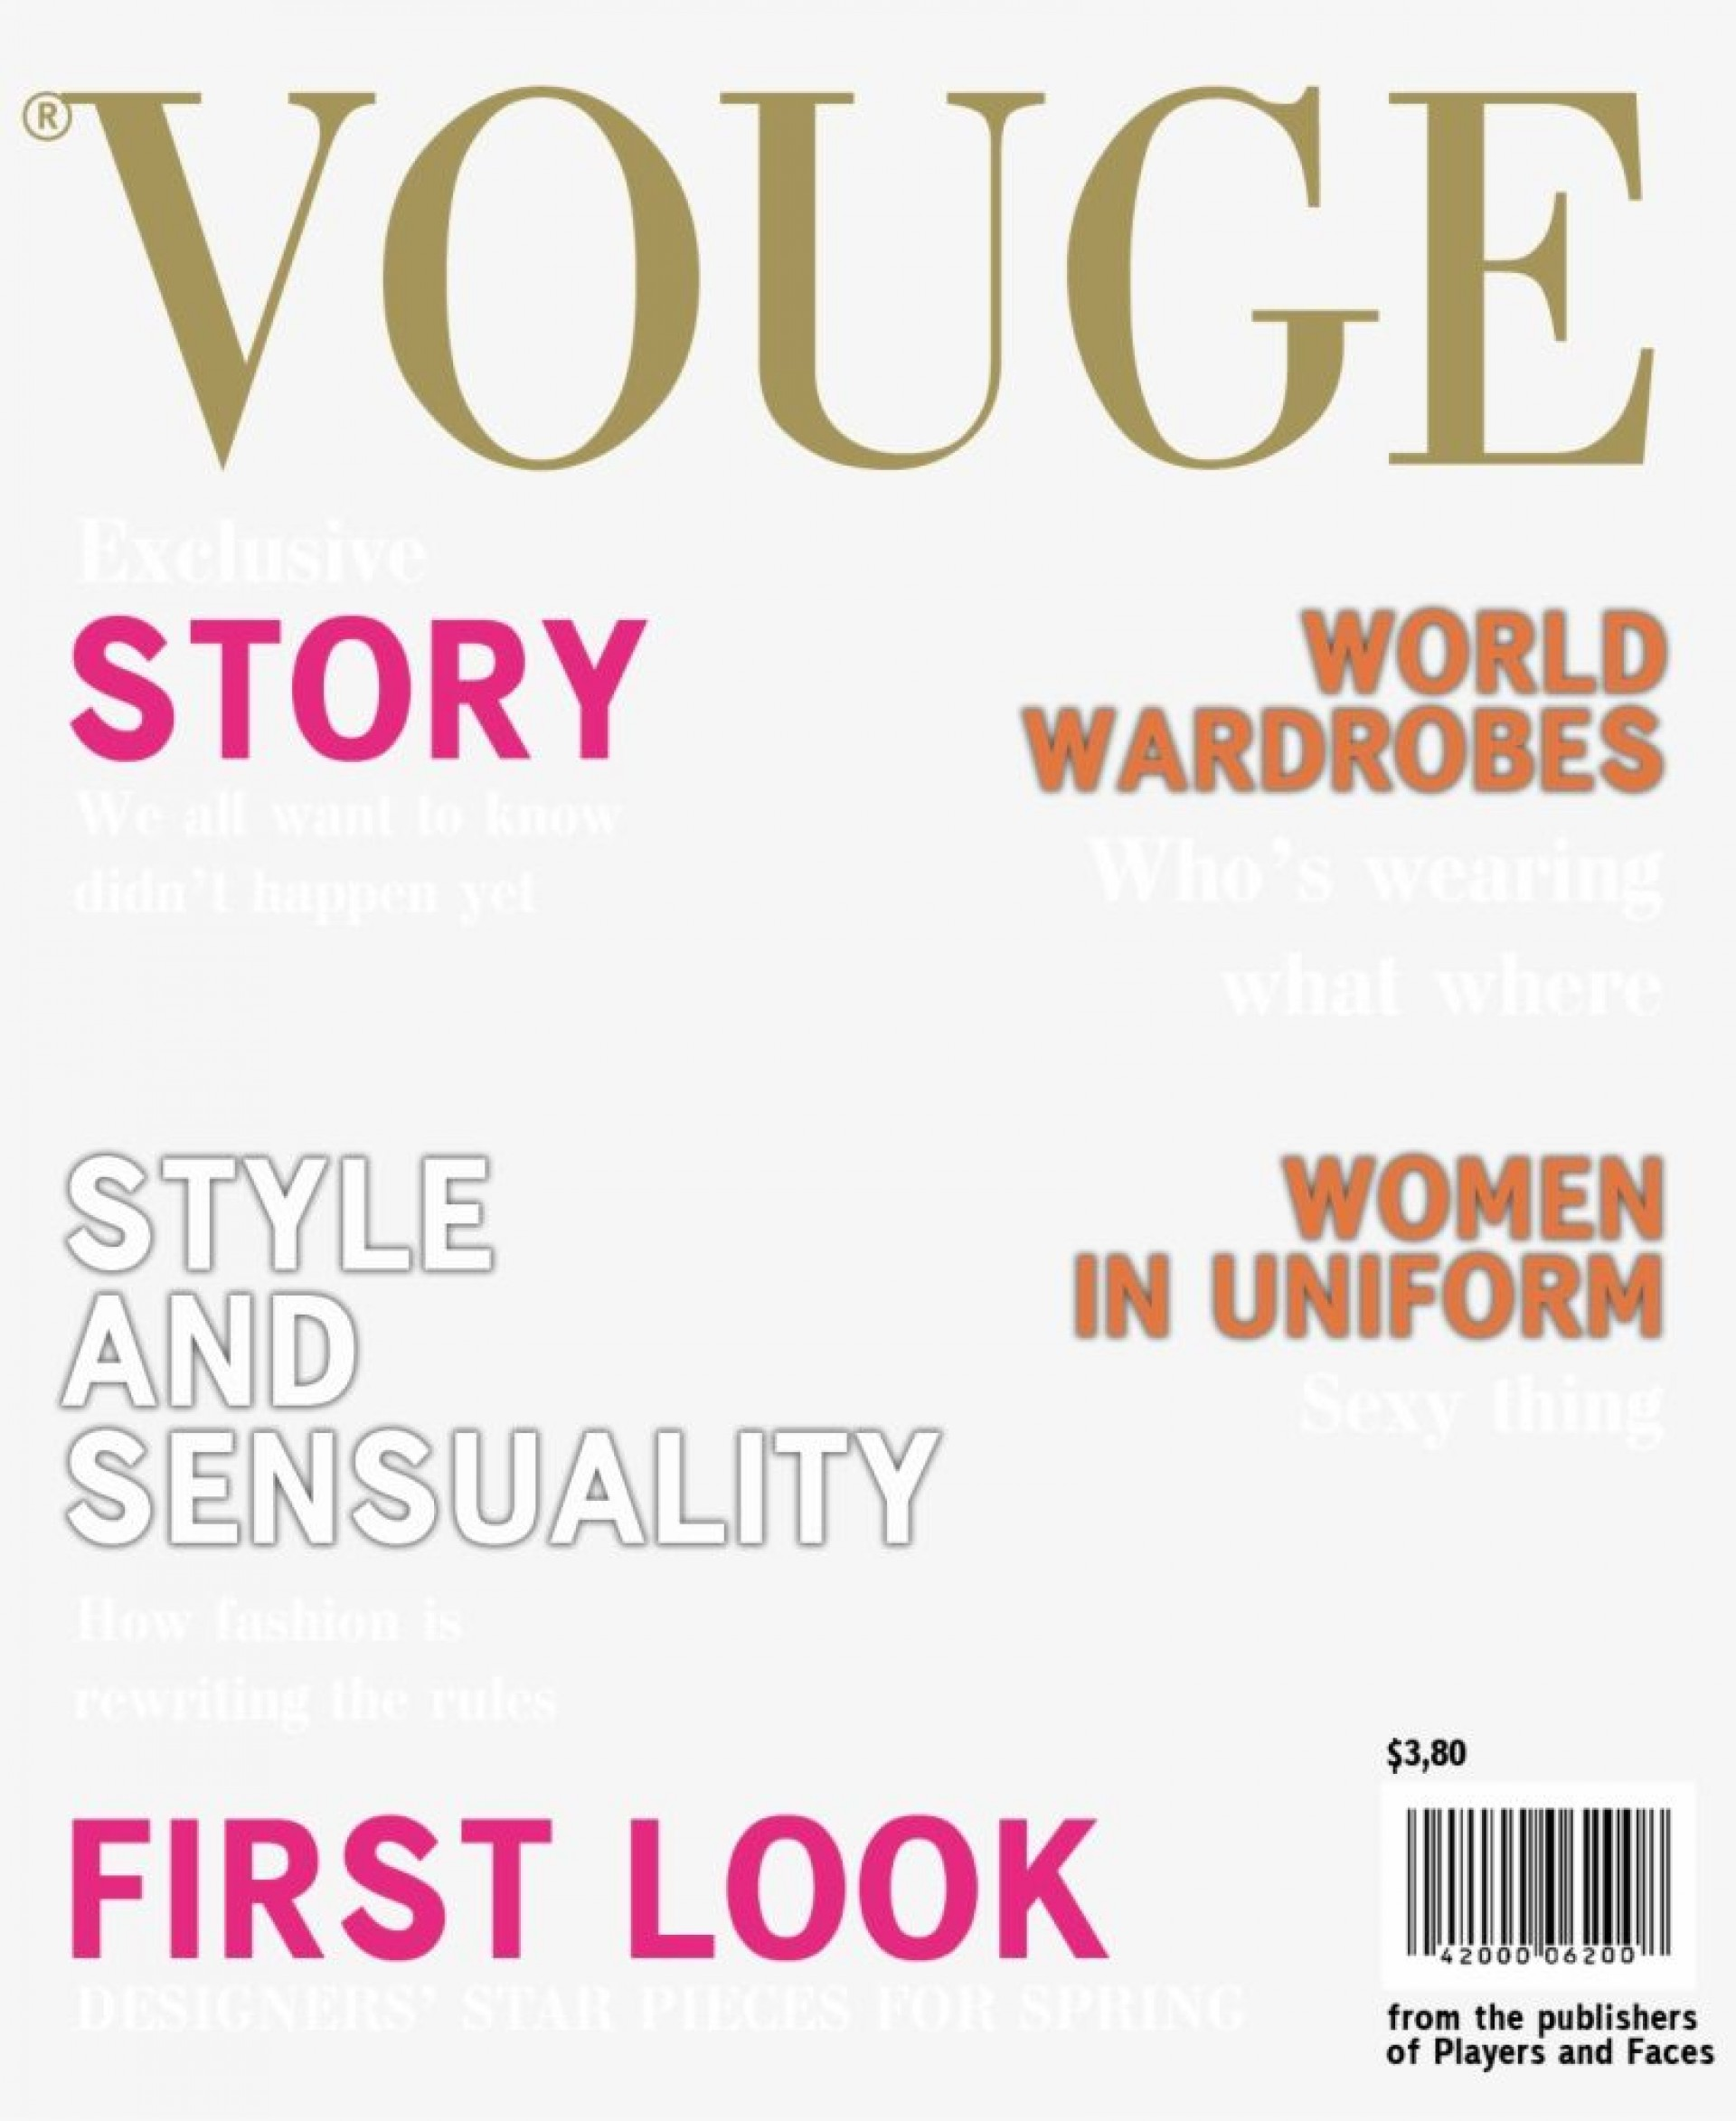 009 Amazing Free Fake Magazine Cover Template Inspiration  Time1920